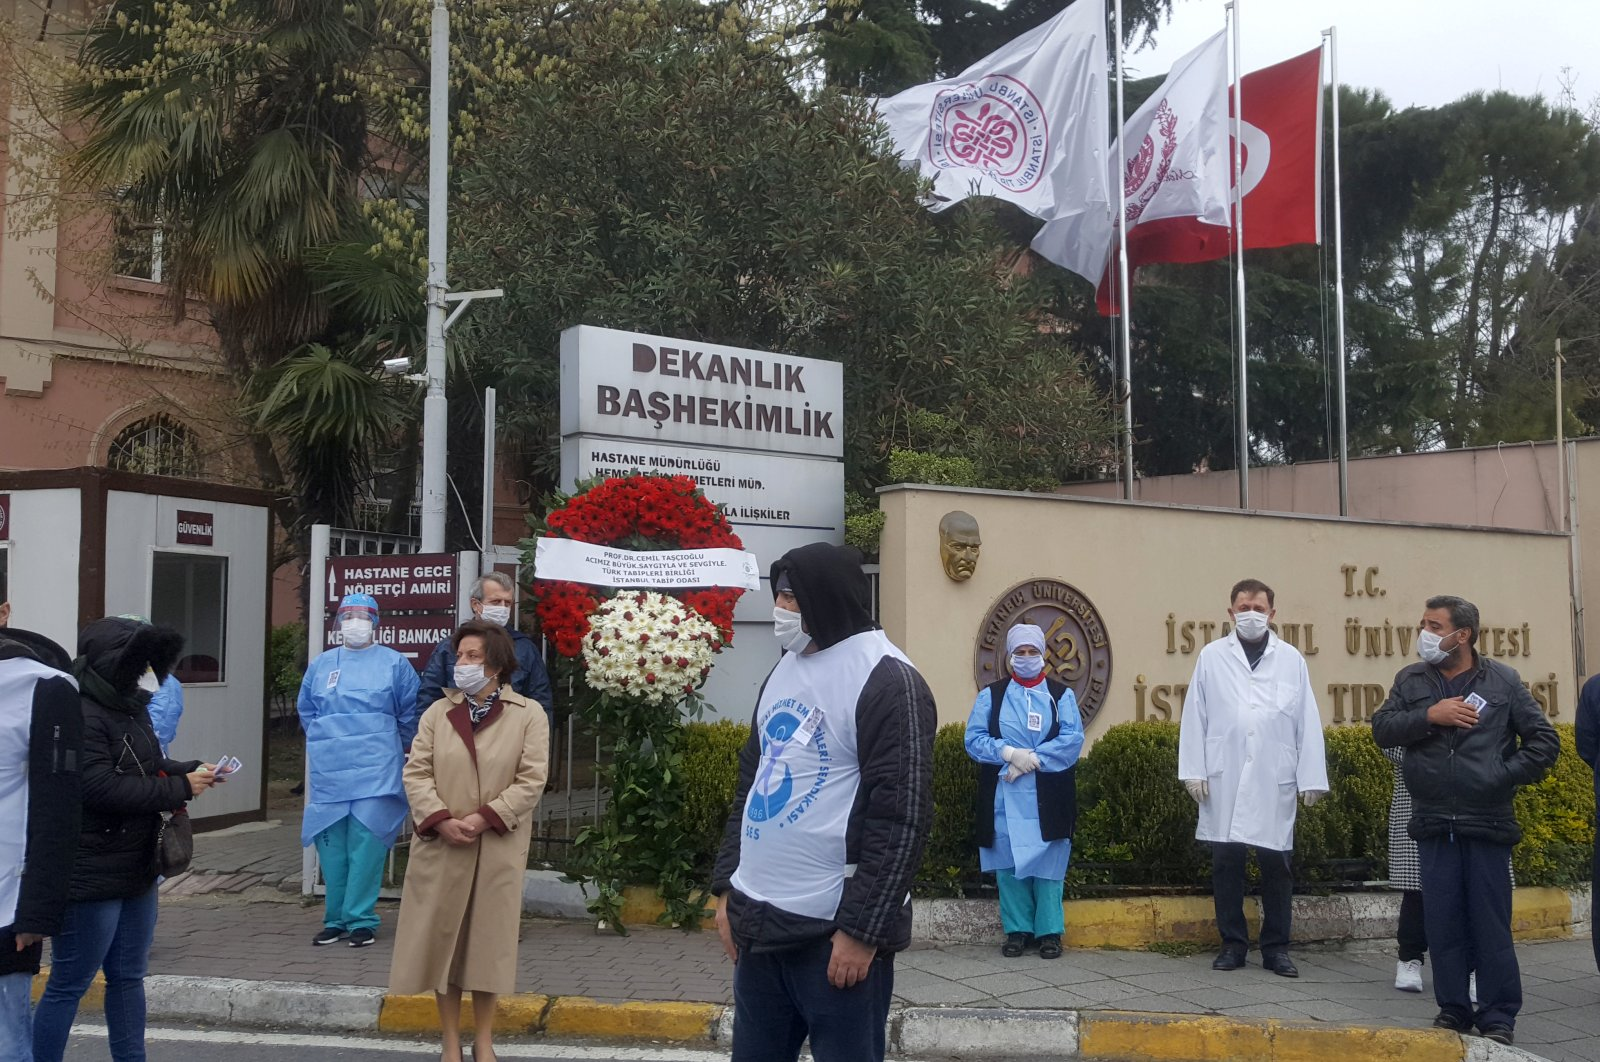 Health workers mourn outside Istanbul University's Faculty of Medicine during a commemoration for professor Dr. Cemil Taşçıoğlu, the country's first medical professional to die of COVID-19, Thursday, April 2, 2020, in Istanbul, Turkey. (AA Photo)